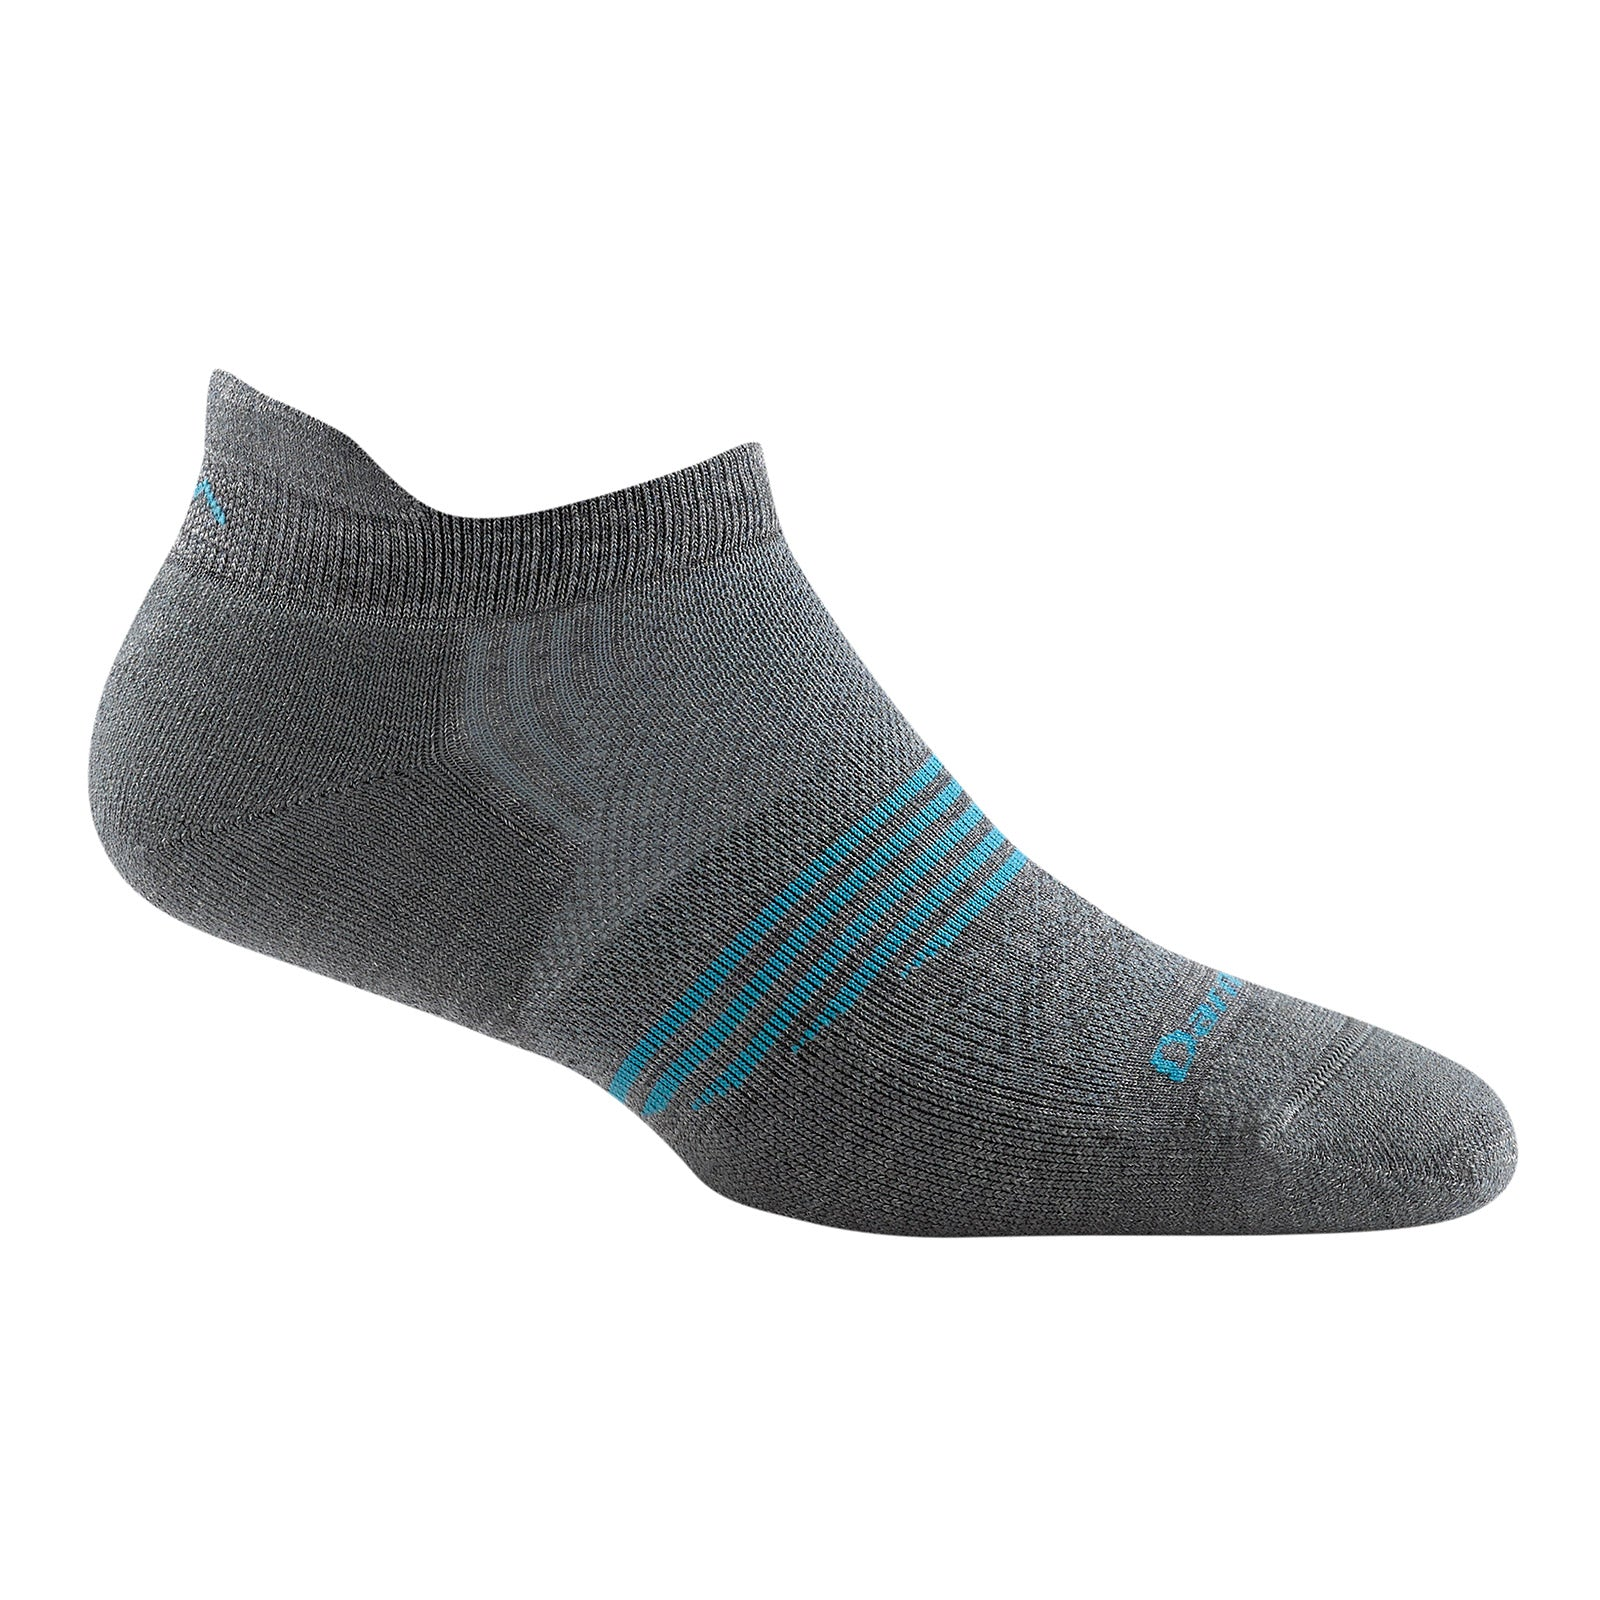 sideview of element no show light cushion women's sock in grey with blue stripes